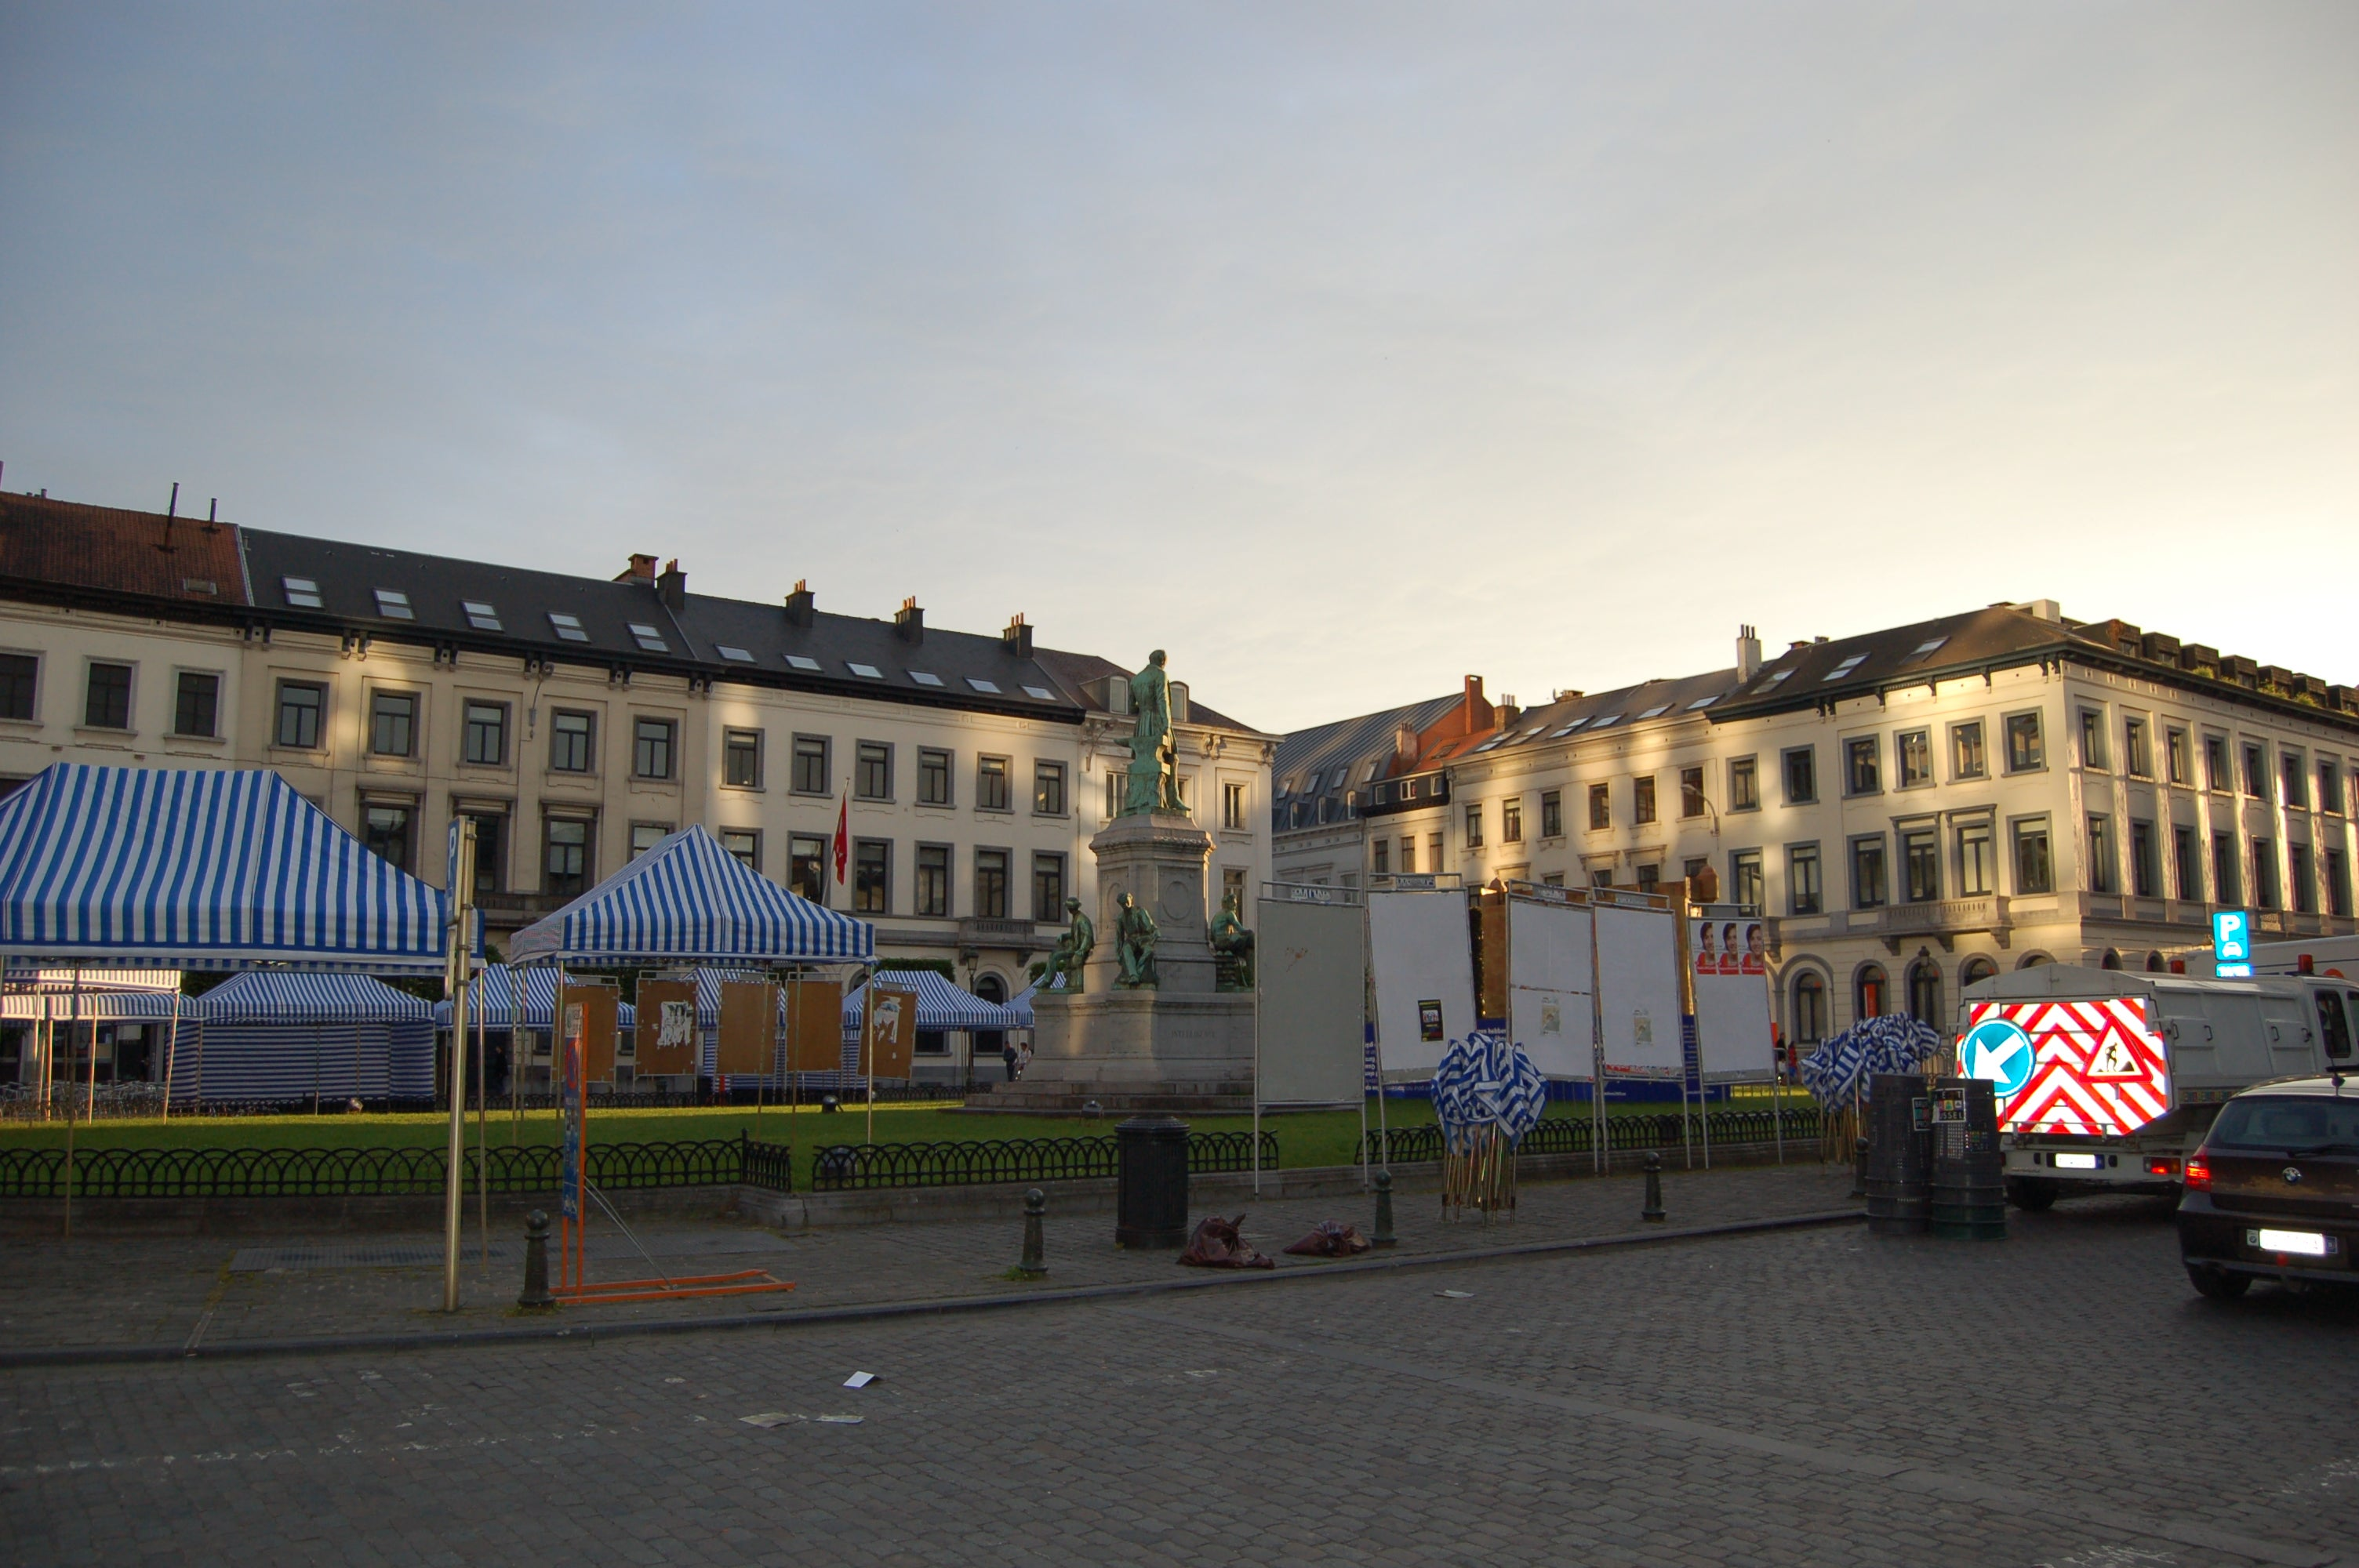 Place du Luxembourg